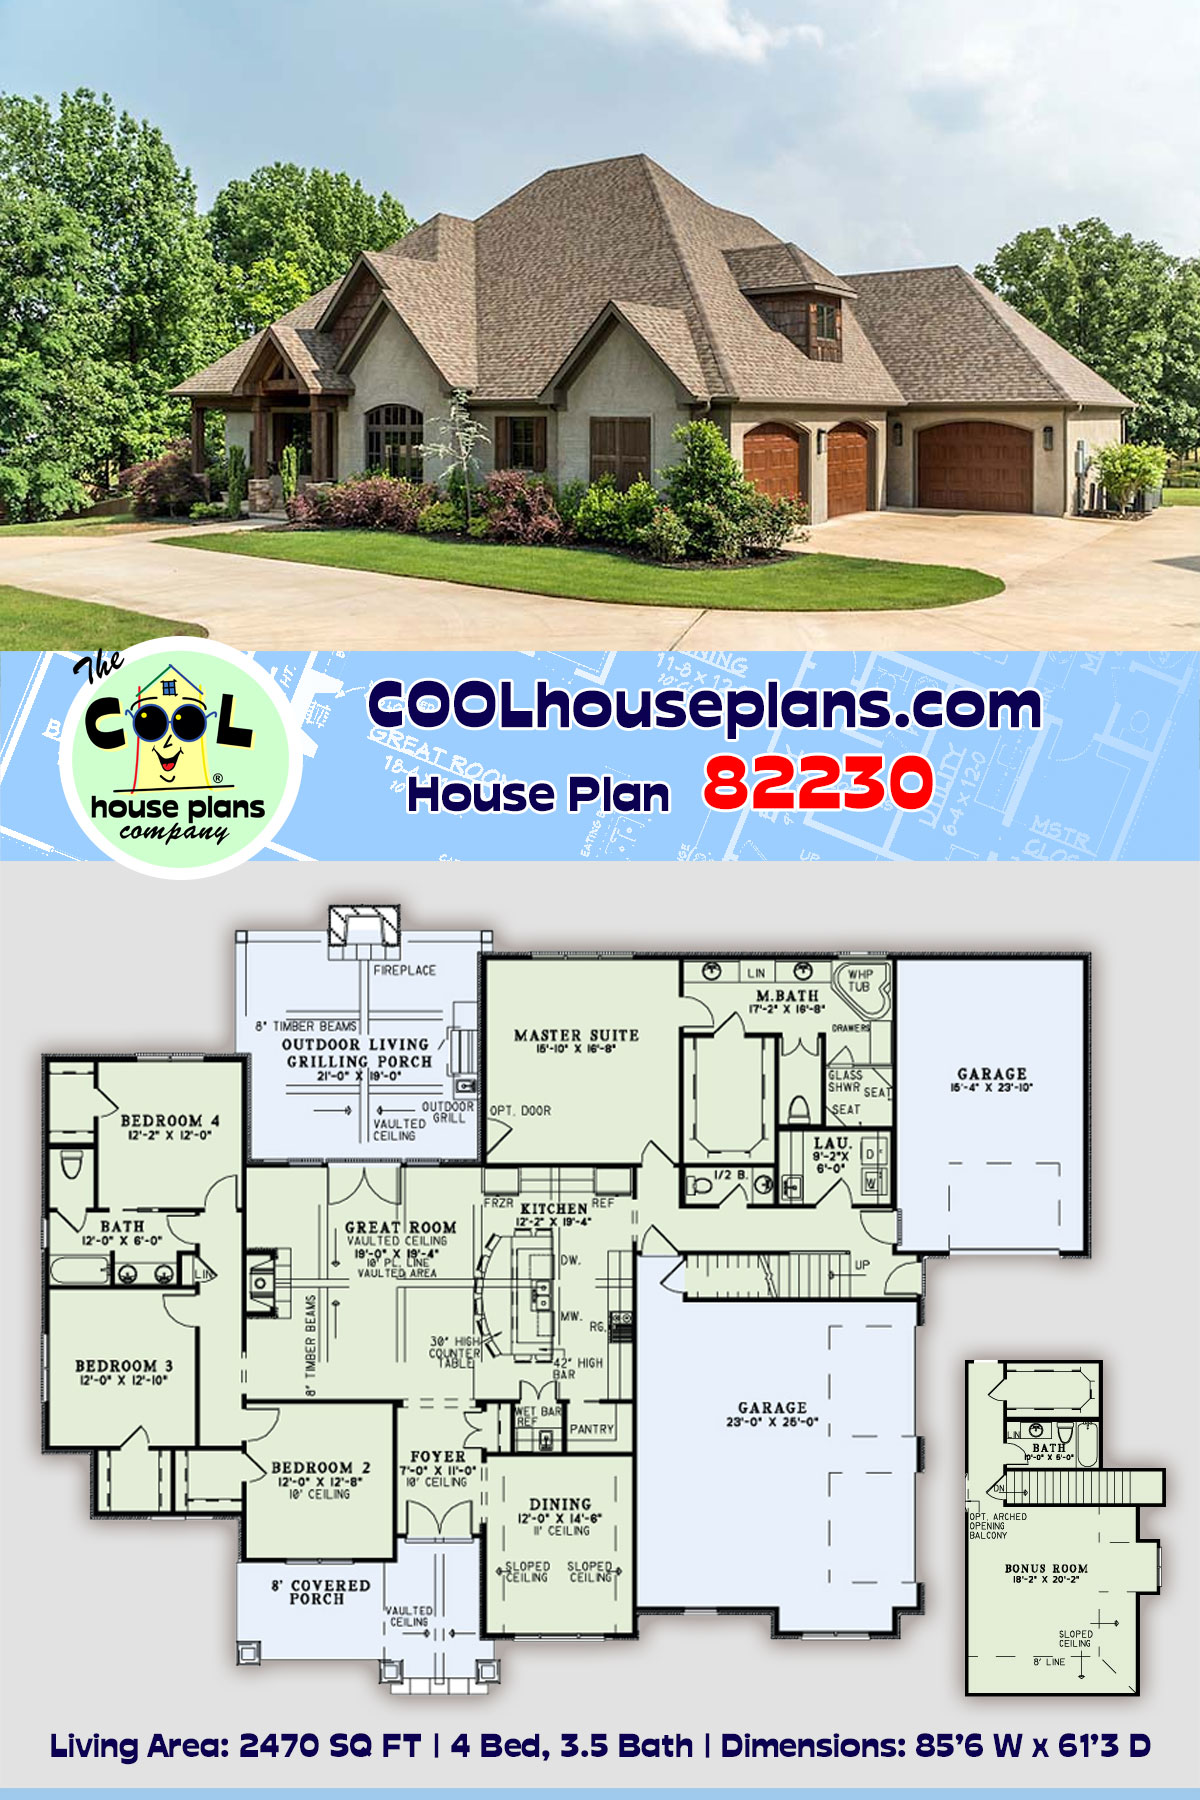 Craftsman, European House Plan 82230 with 4 Beds, 4 Baths, 3 Car Garage